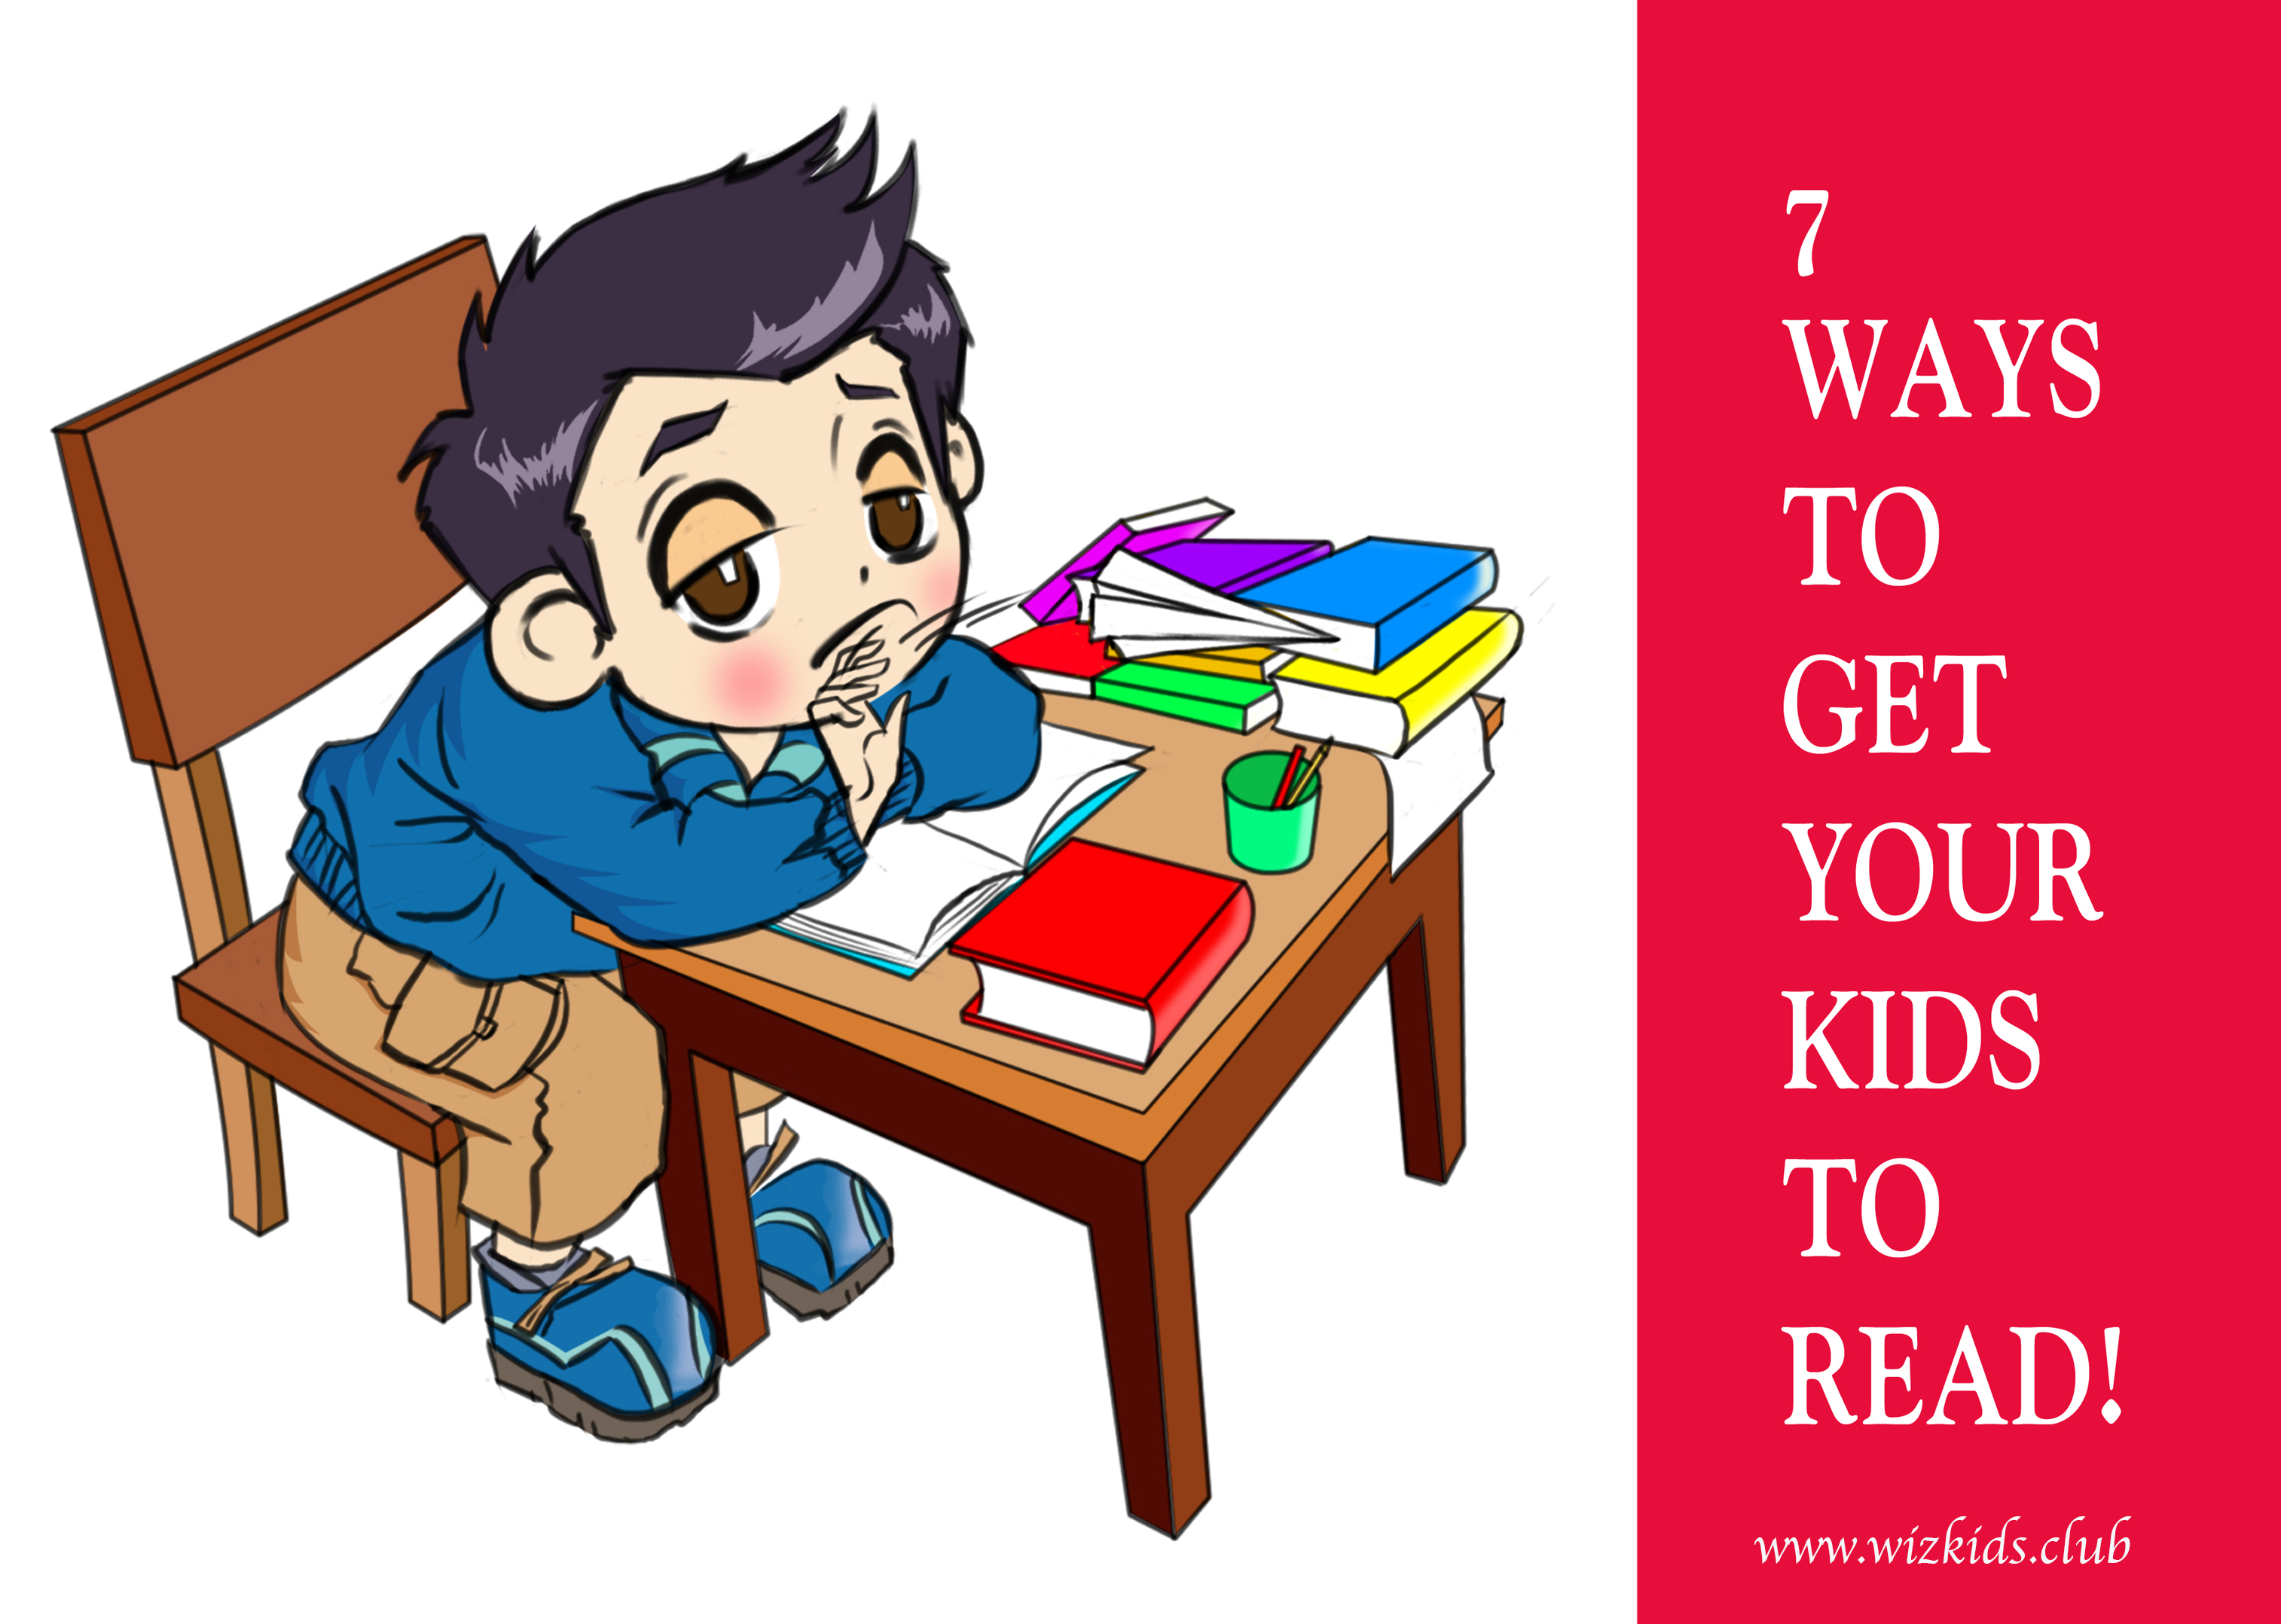 7 WAYS TO HOOK RELUCTANT READERS